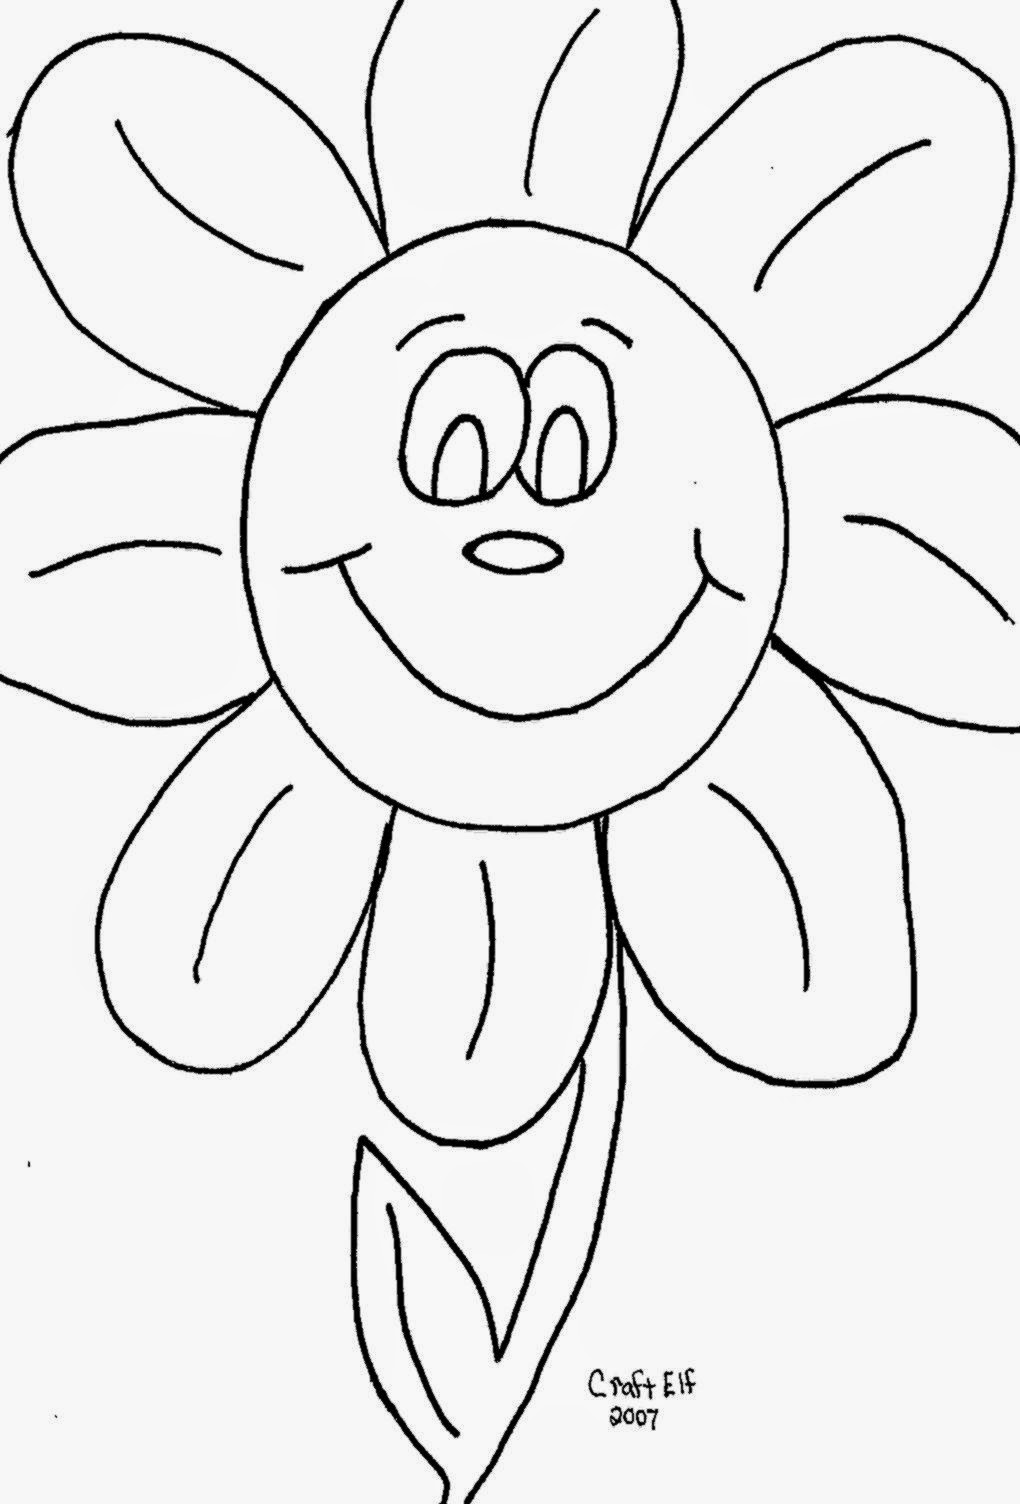 Kindergarten Color Sheets | Free Coloring Sheet